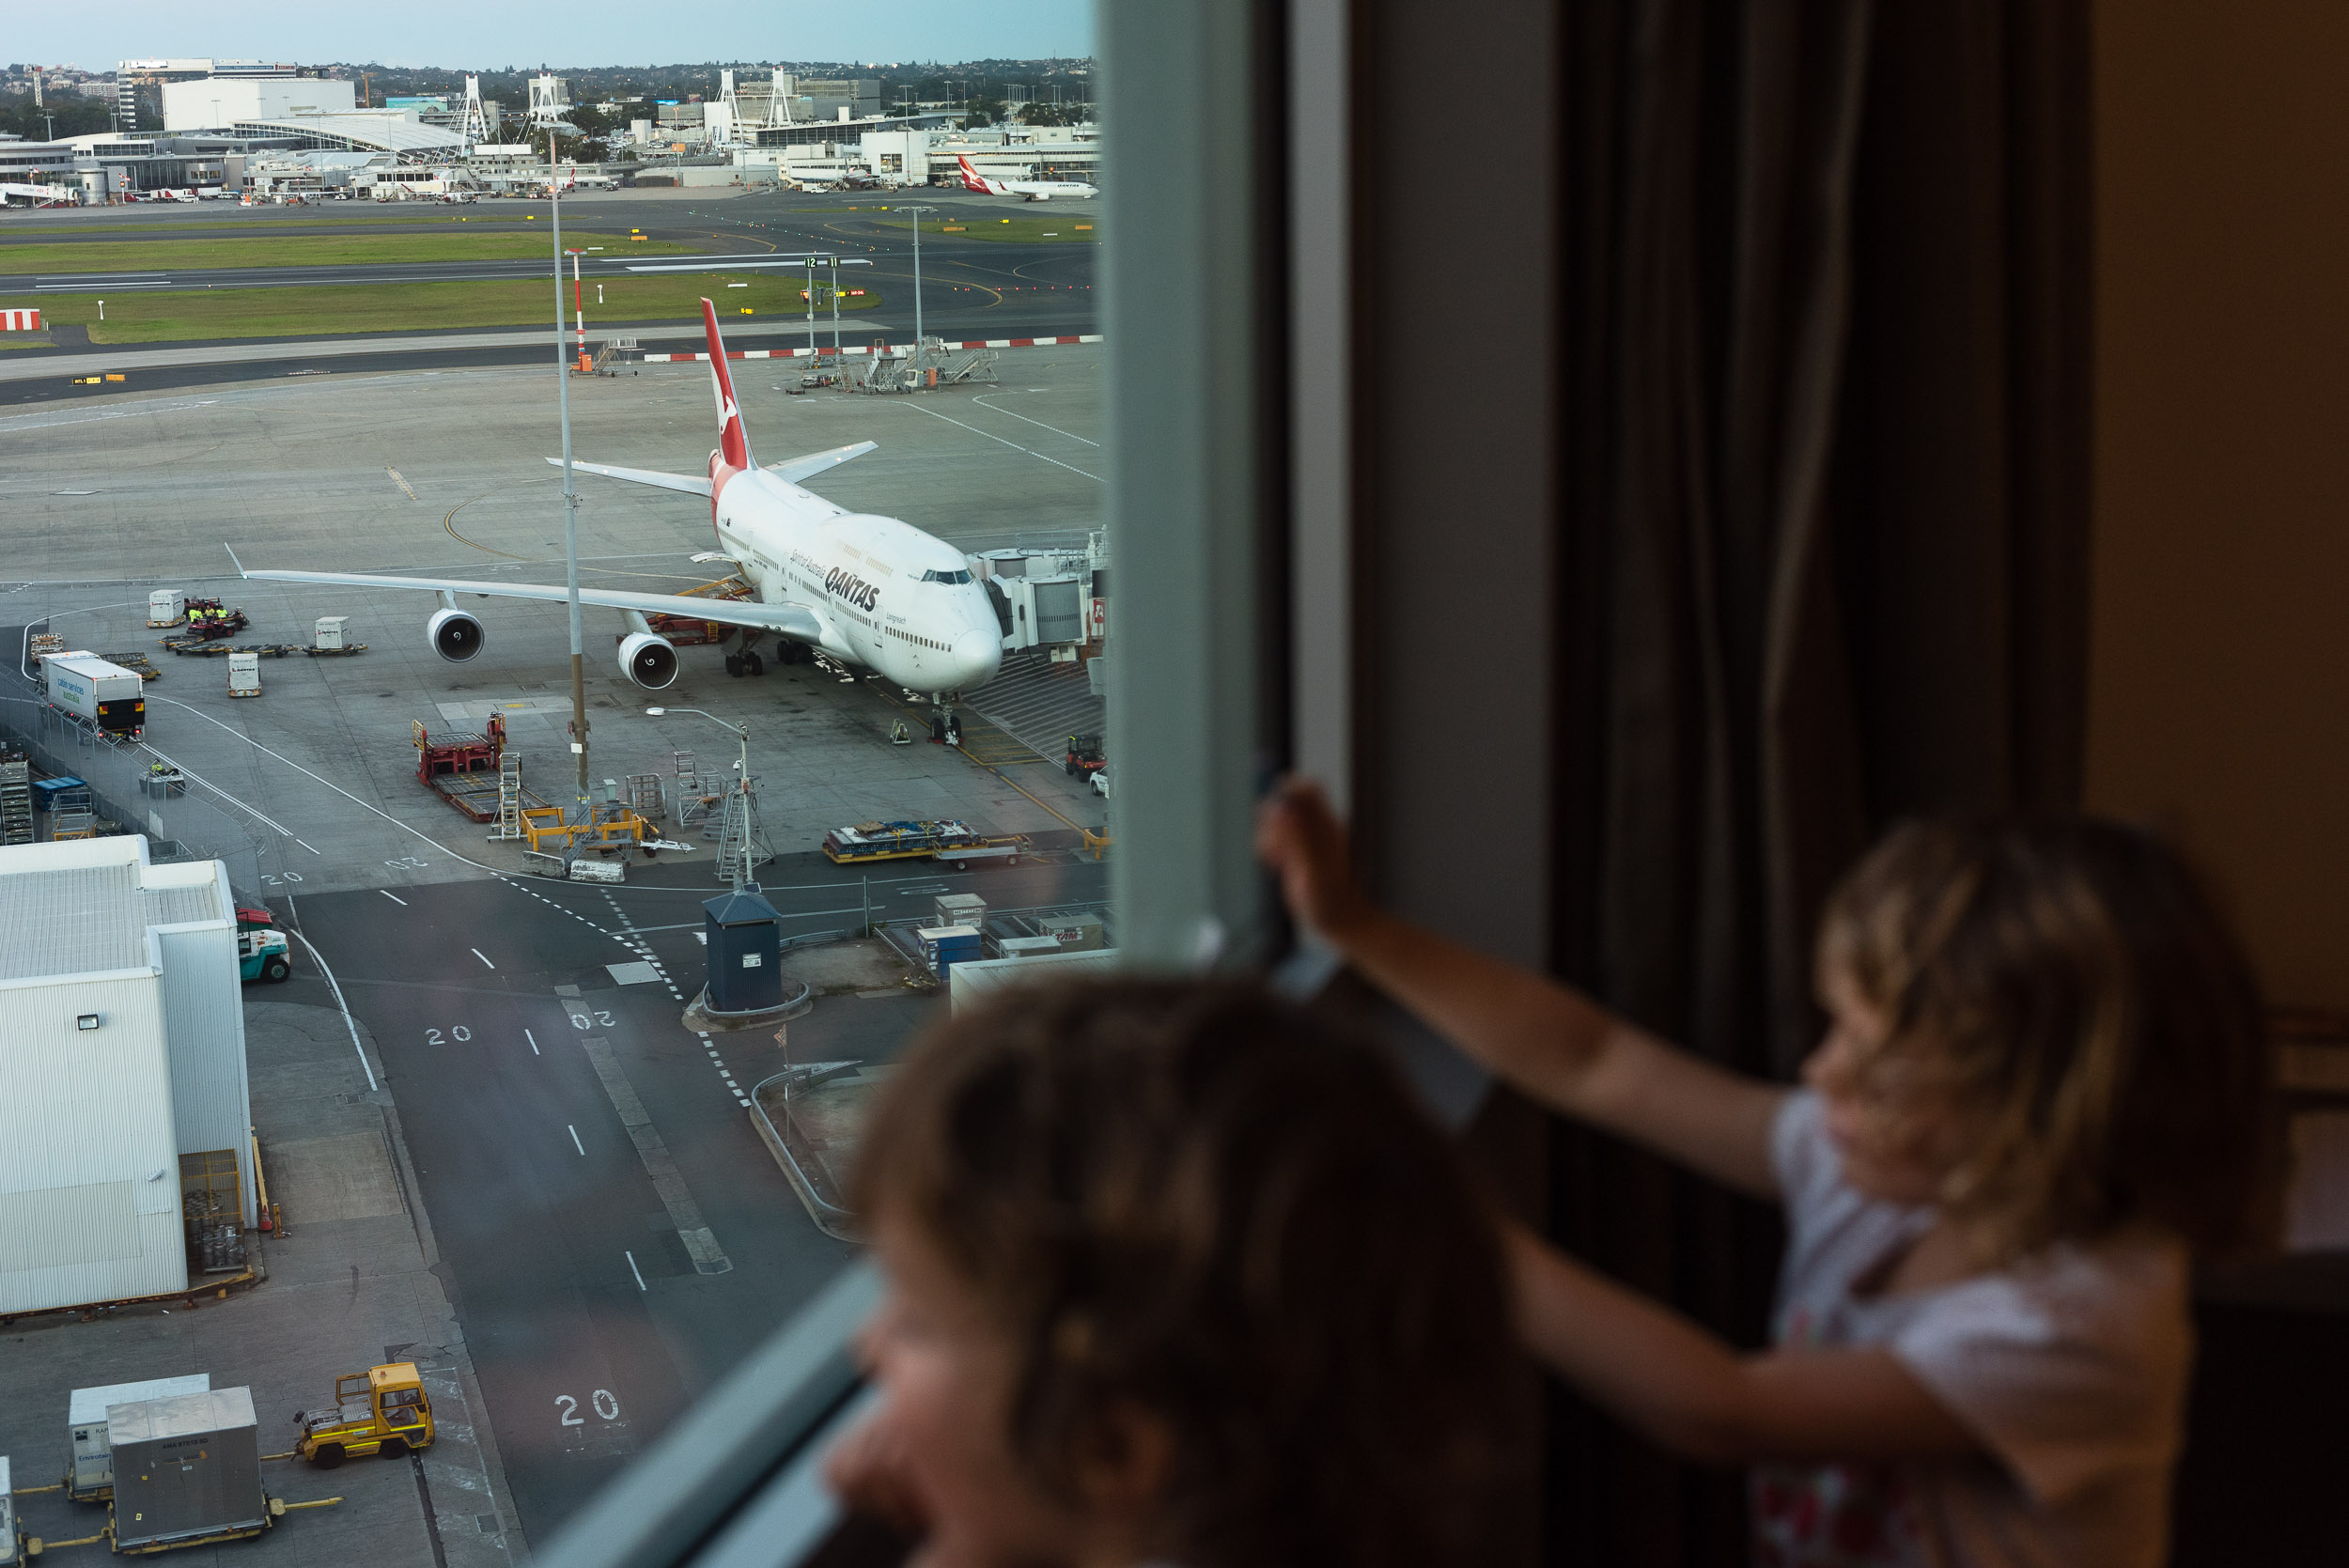 Finn and Holly looking at planes taking off, at Sydney airport, from room 802, level 8 of Rydges Hotel, Sydney, Australia. We stayed the night before our flight out and the kids loved it!